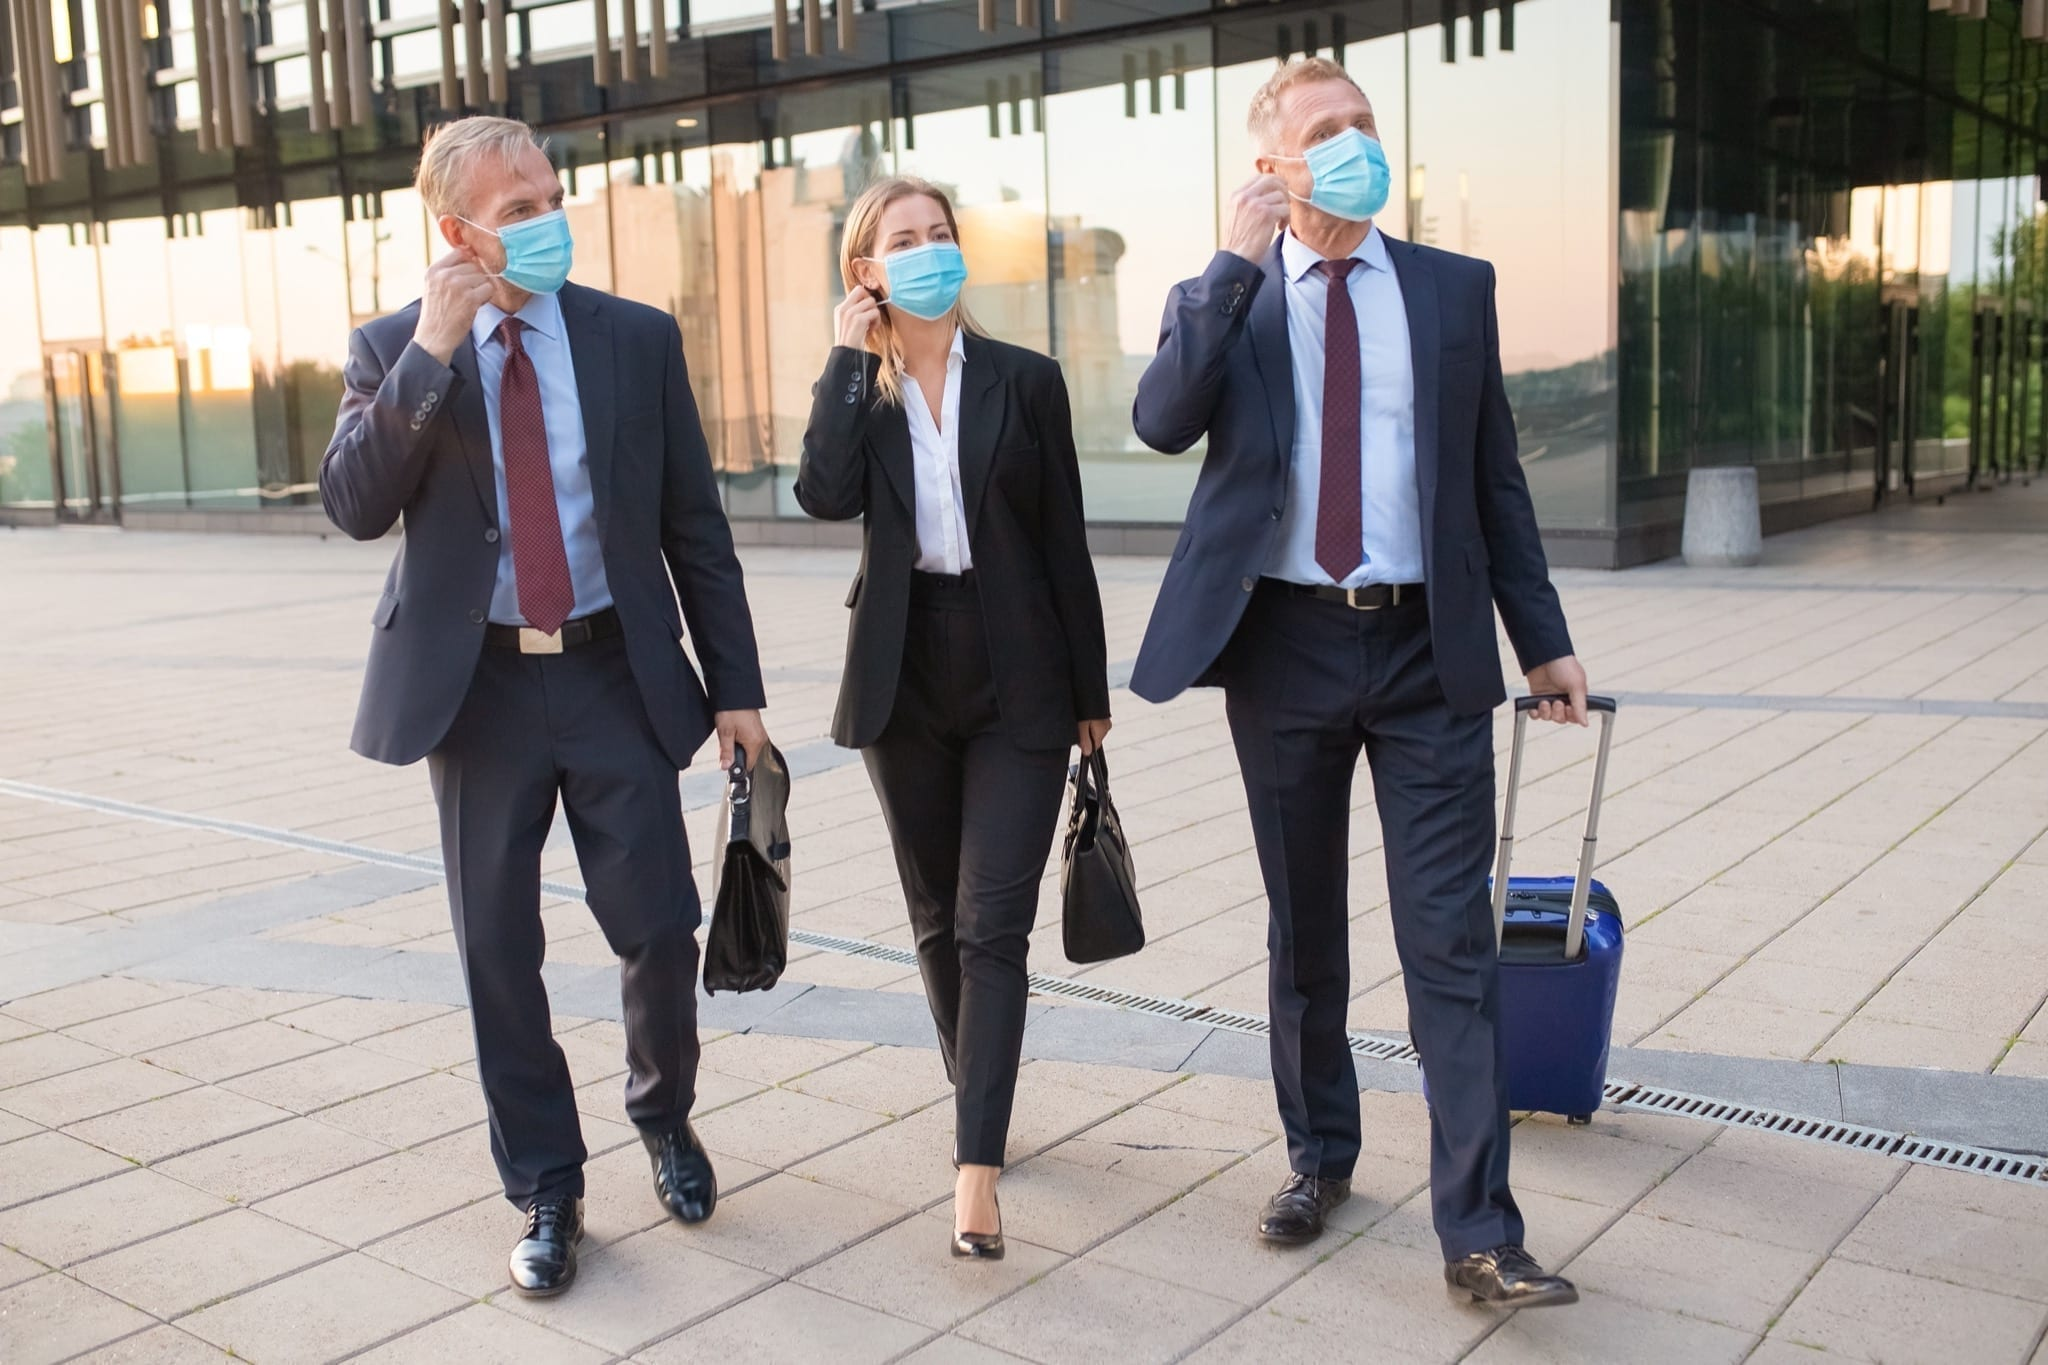 6767 copy - Business people adjusting or ready to take off face masks